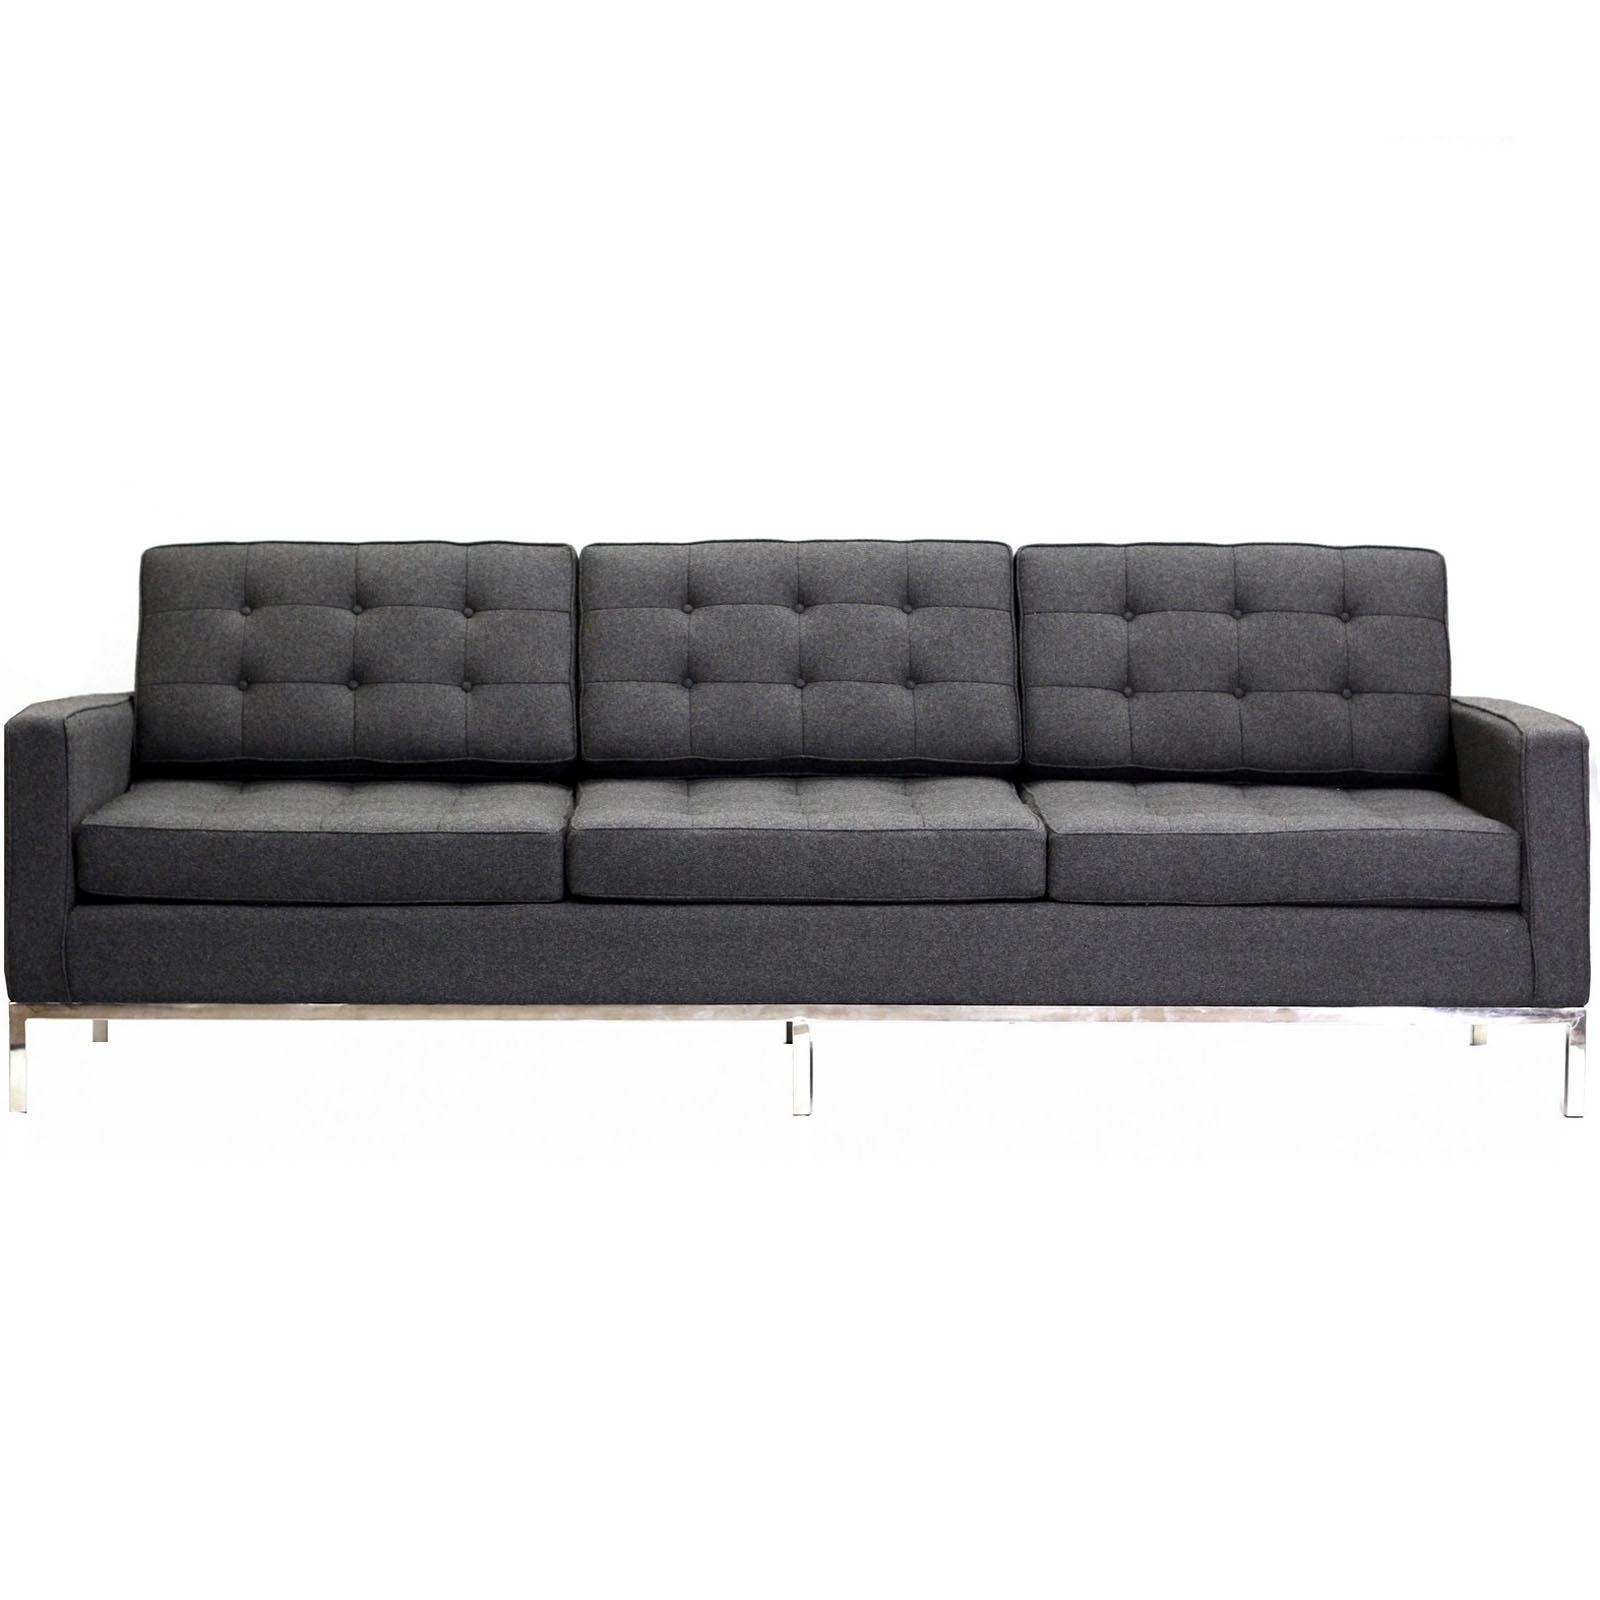 Most Current Florence Knoll Style Sofa Couch – Wool Within Florence Knoll Style Sofas (View 11 of 15)